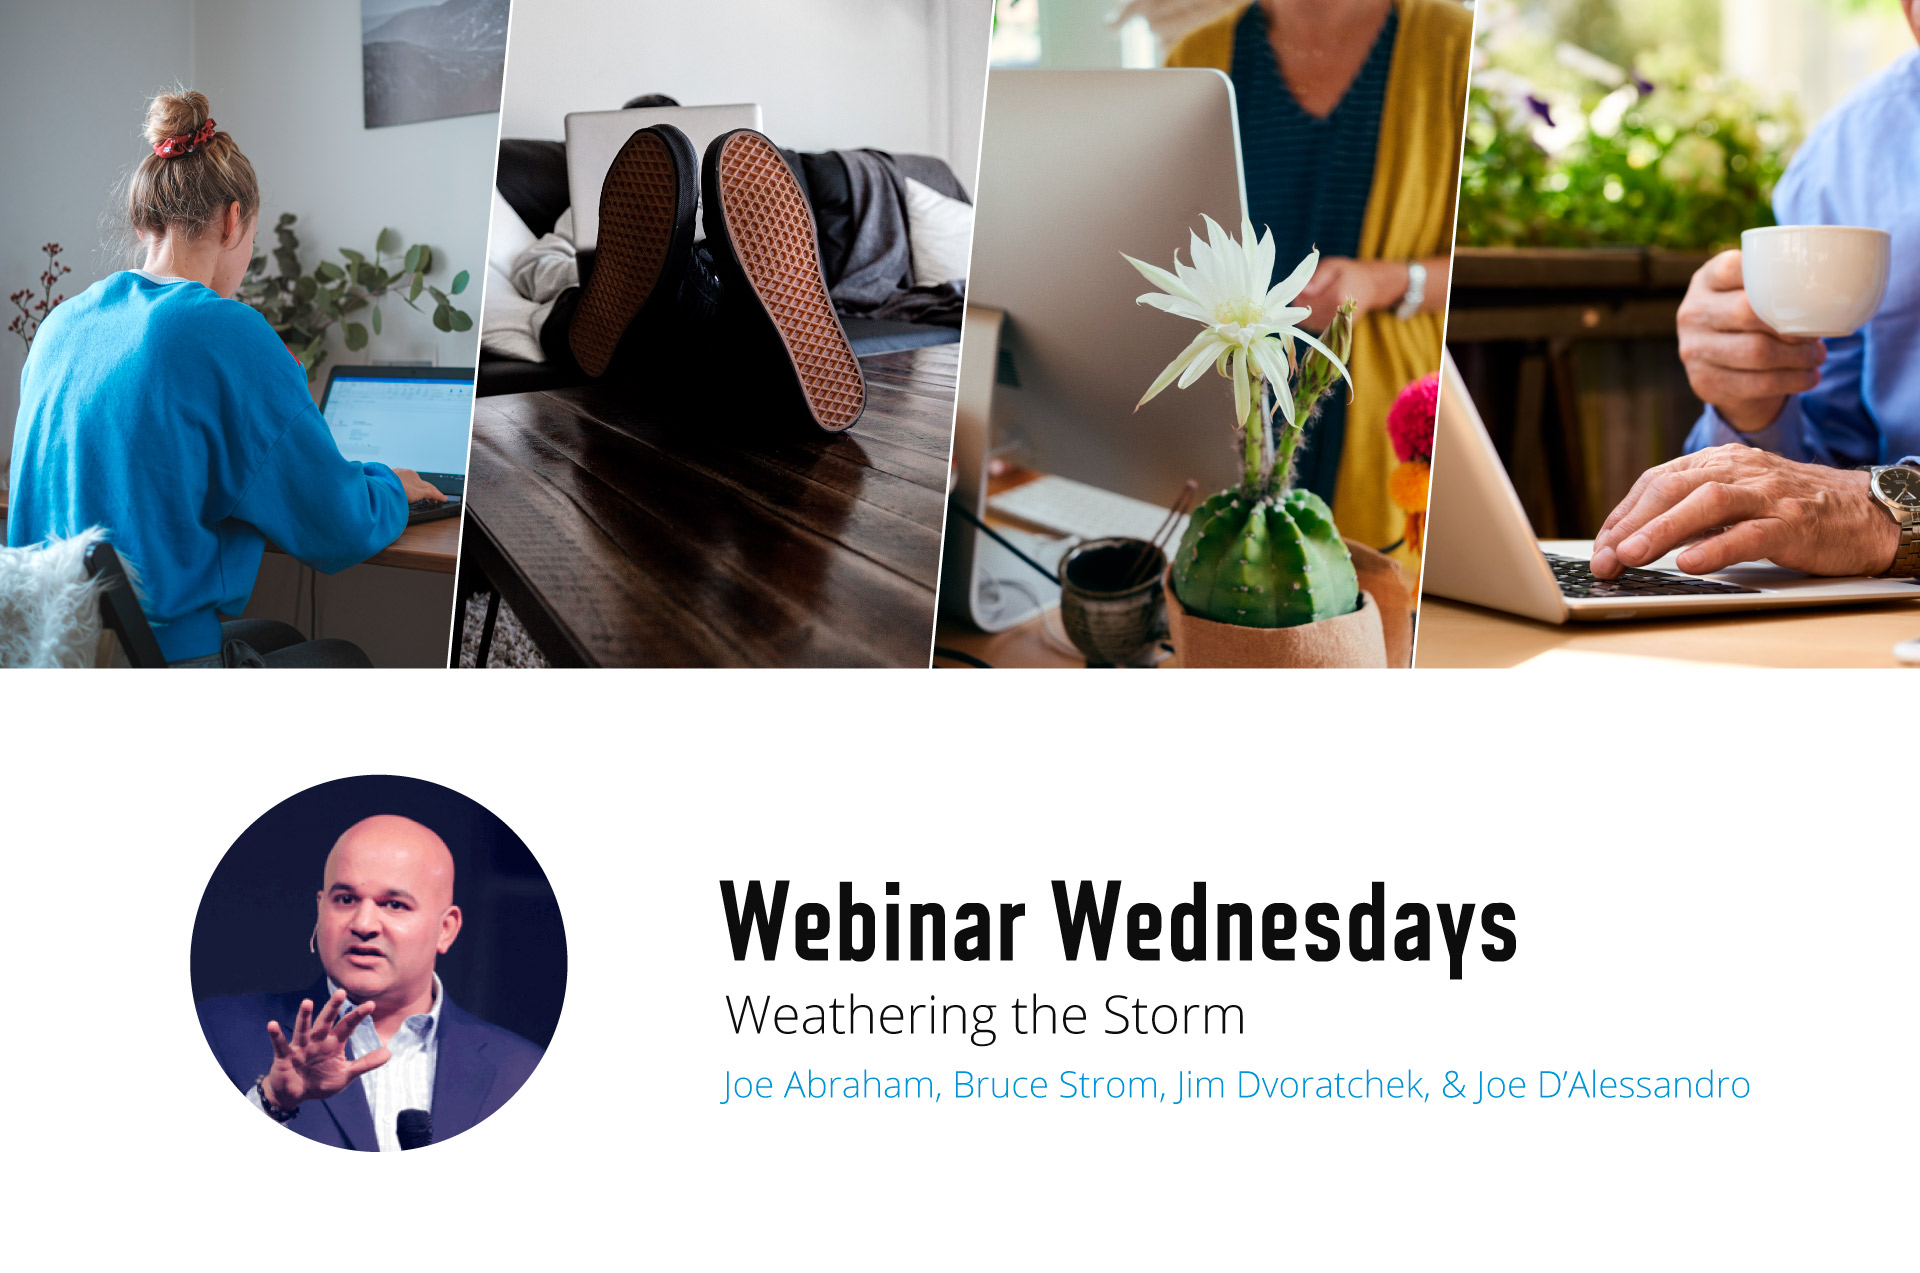 webinar wednesdays weathering the storm